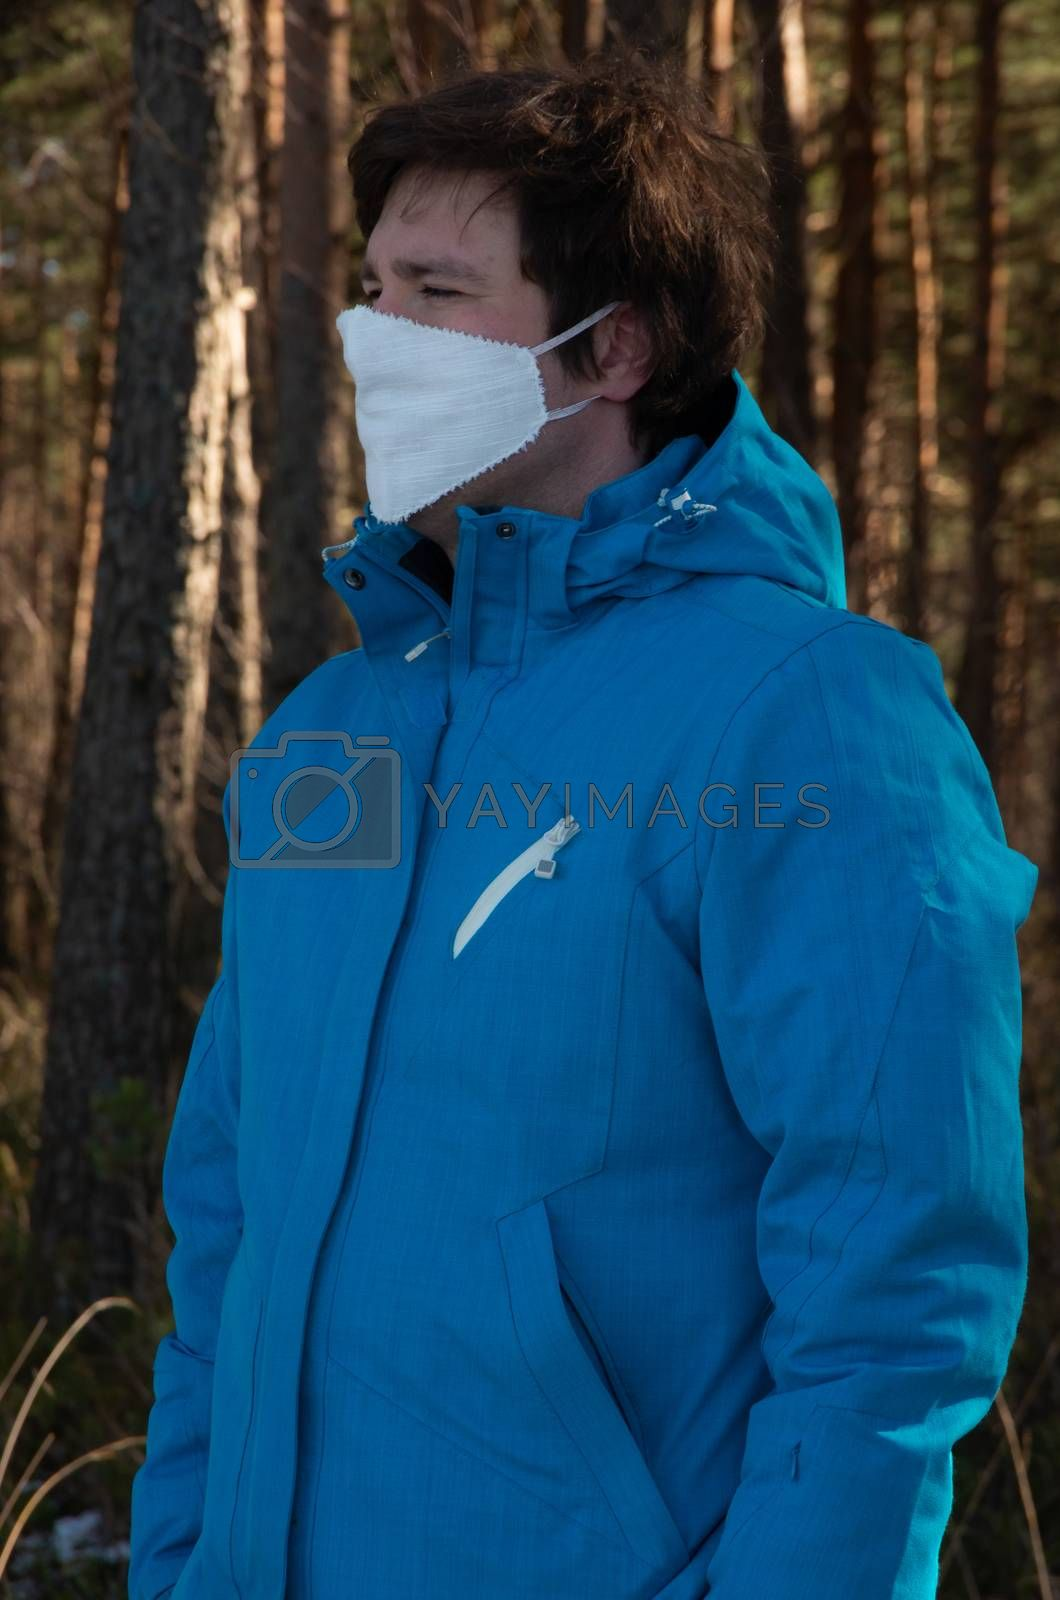 Virus, man with white face mask in a blue jacket, coronavirus, COVID-19